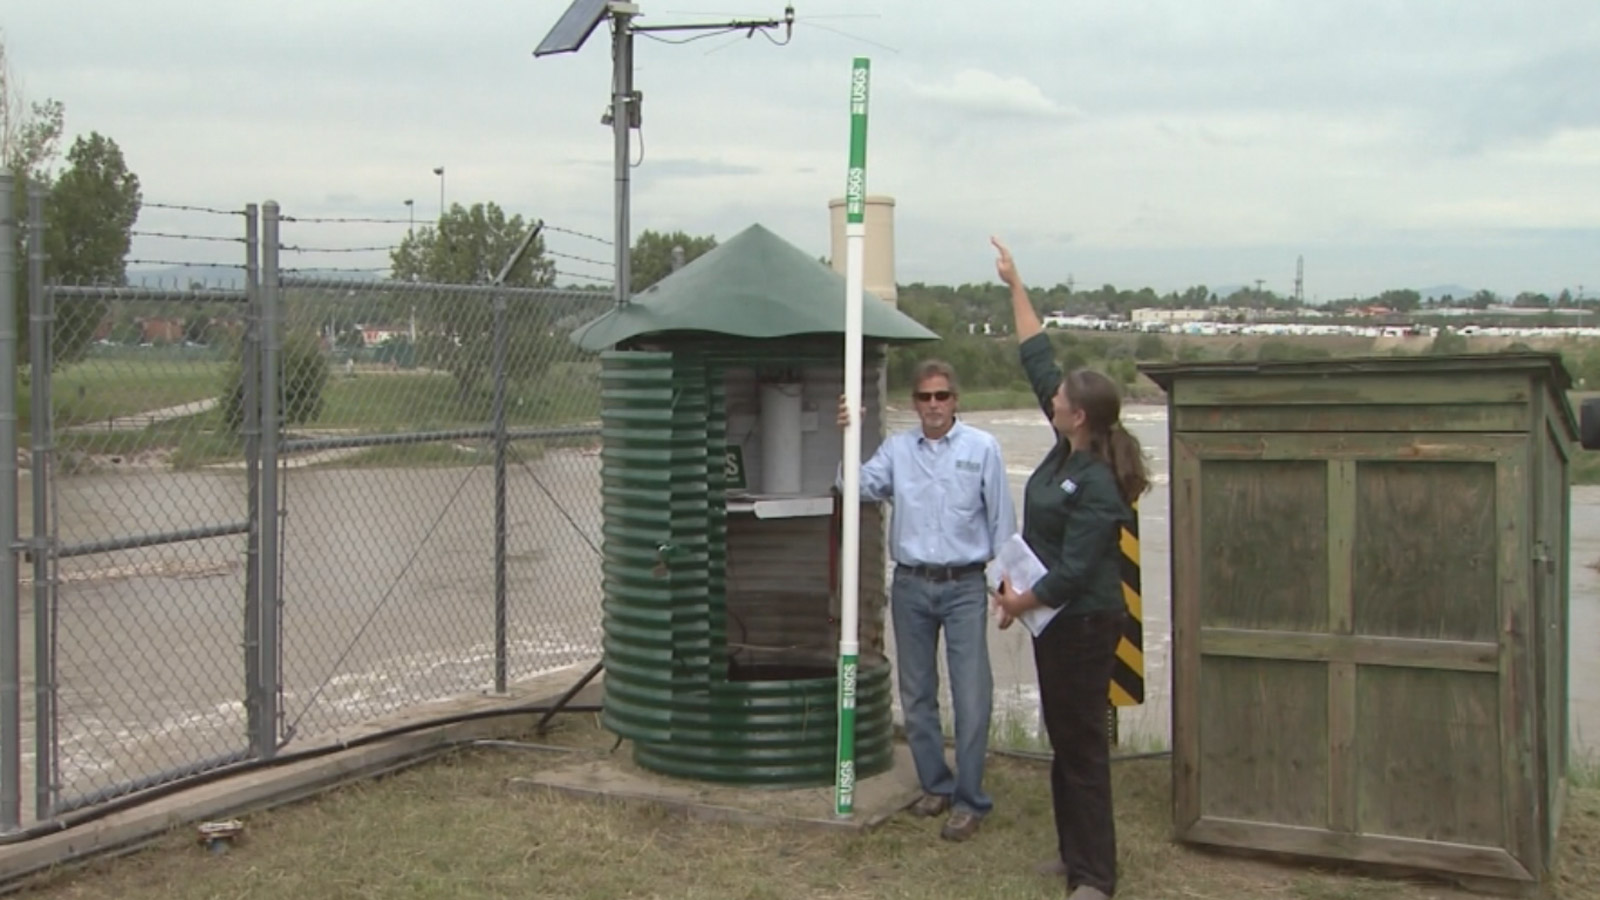 USGS Hydrologist Suzanne Paschke points out the water level during the 1965 South Platte flooding would have reached to top of the pole (credit: CBS)